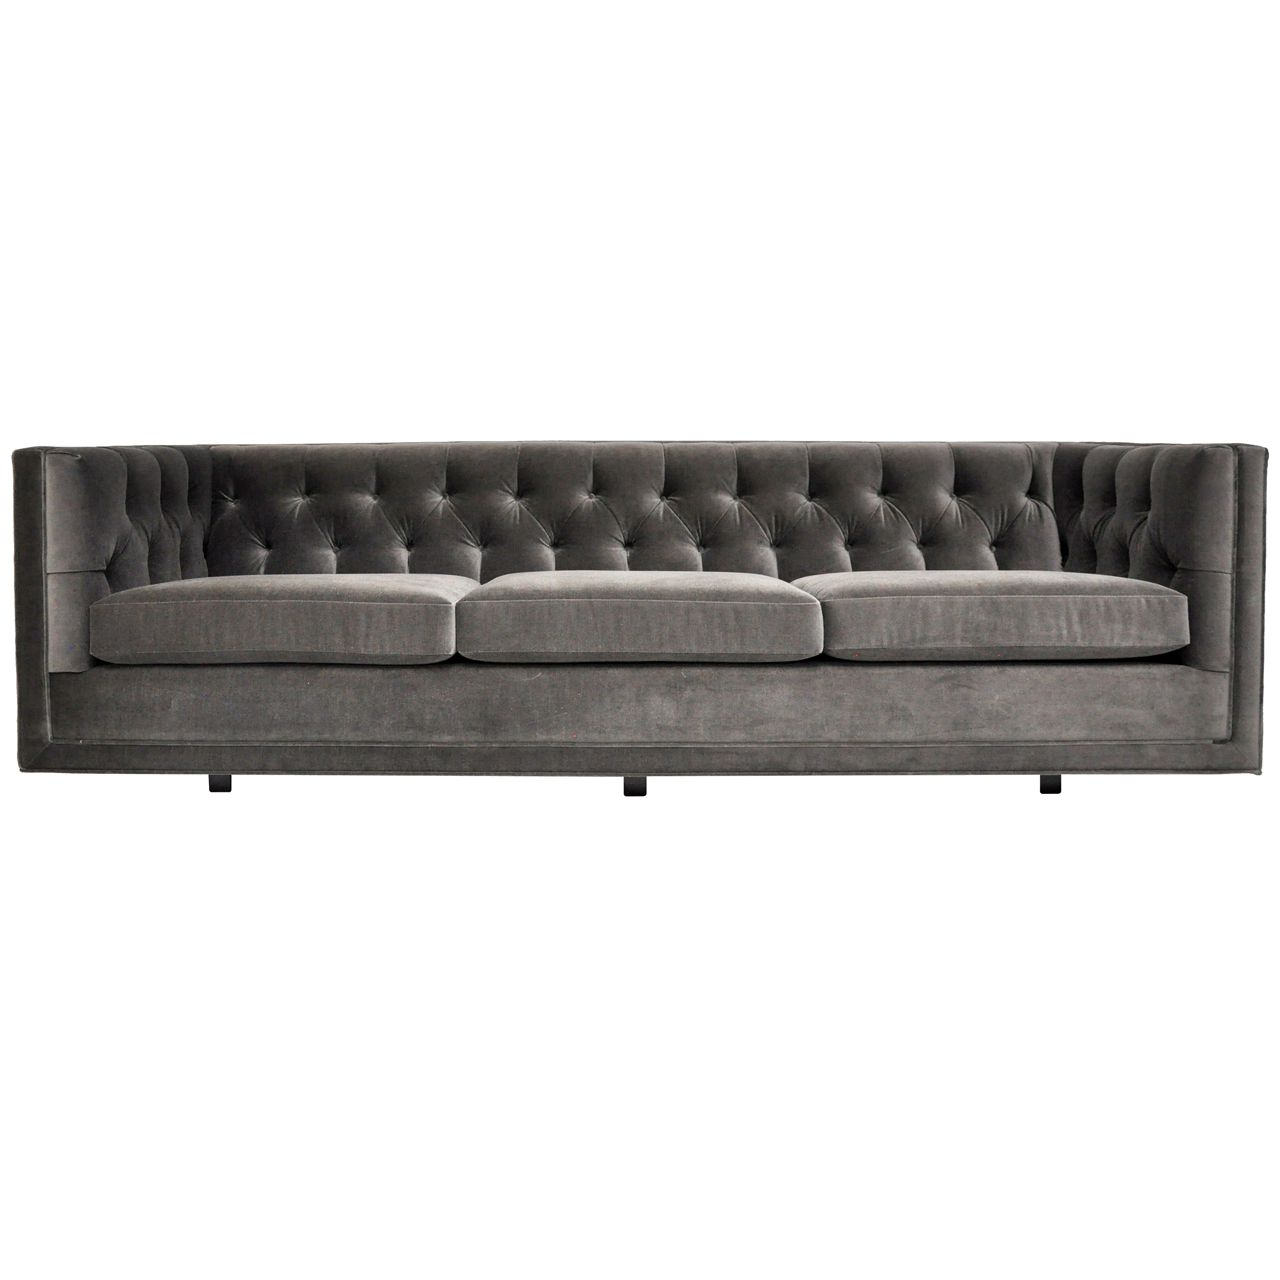 Delicieux Dunbar Tuxedo Sofa   Edward Wormley | From A Unique Collection Of Antique  And Modern Sofas At Https://www.1stdibs.com/furniture/seating/sofas/